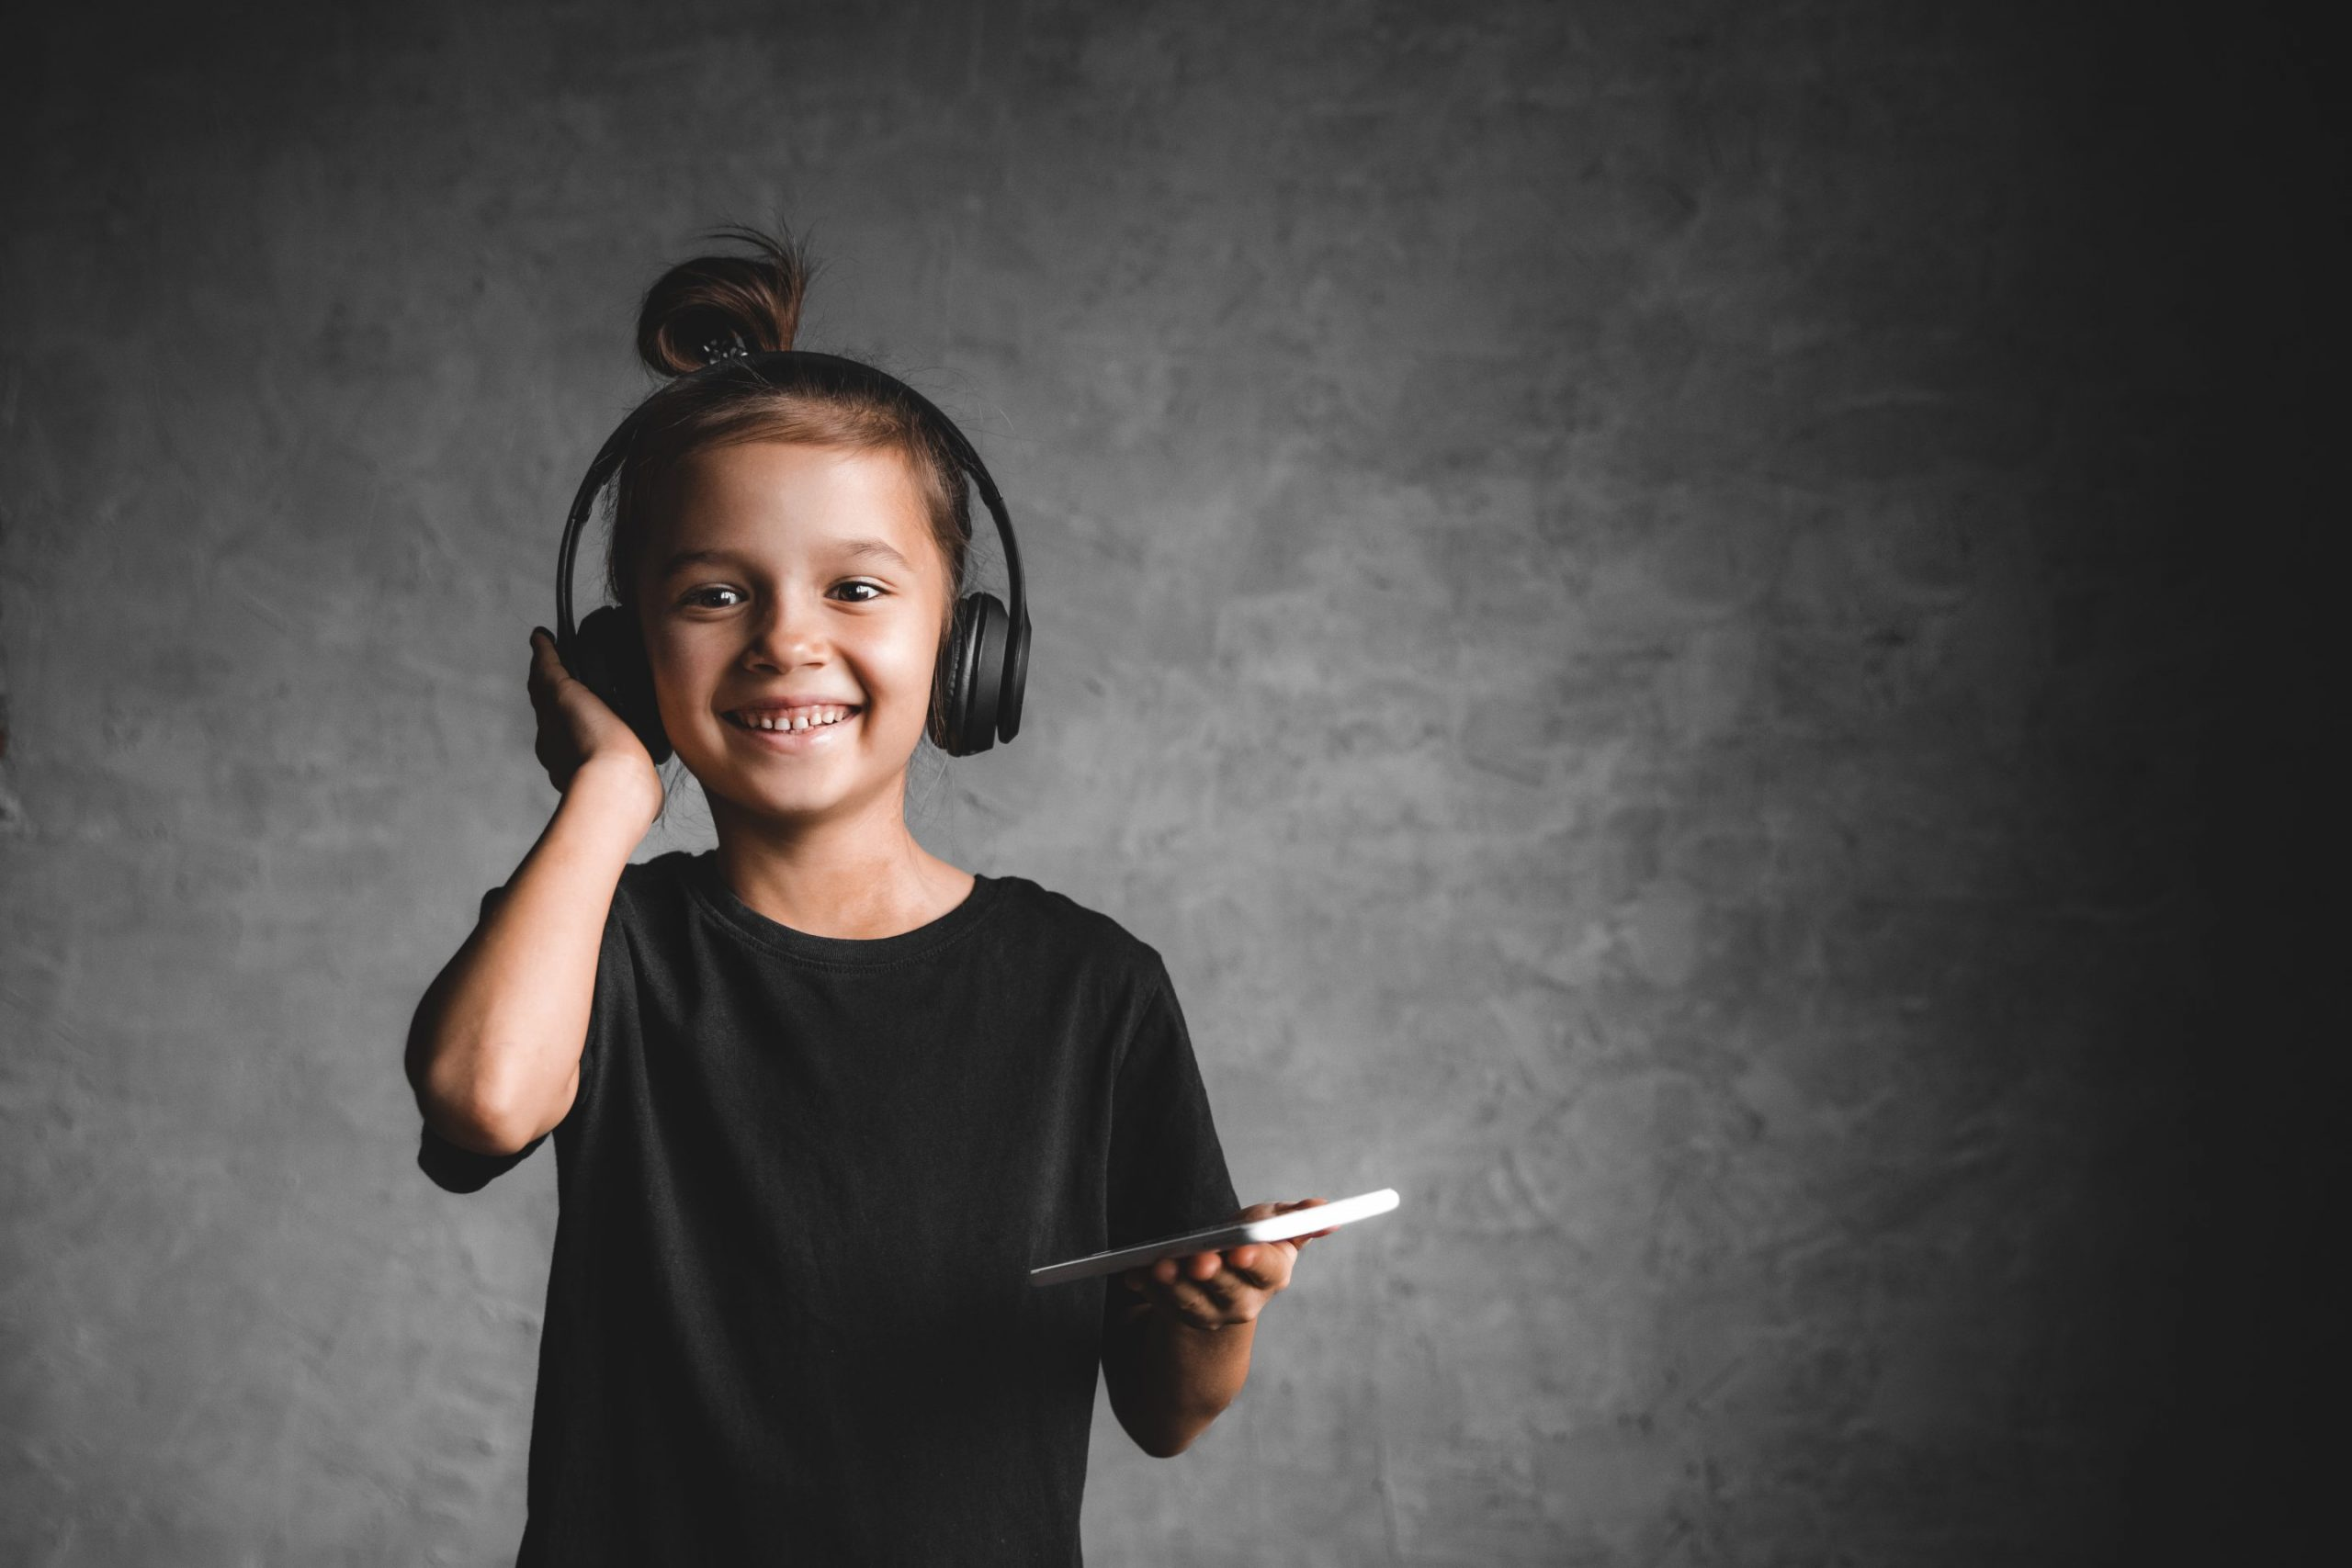 Kiedel little girl with headphones and phone on a gray ba 4LZDYTC scaled 1 scaled